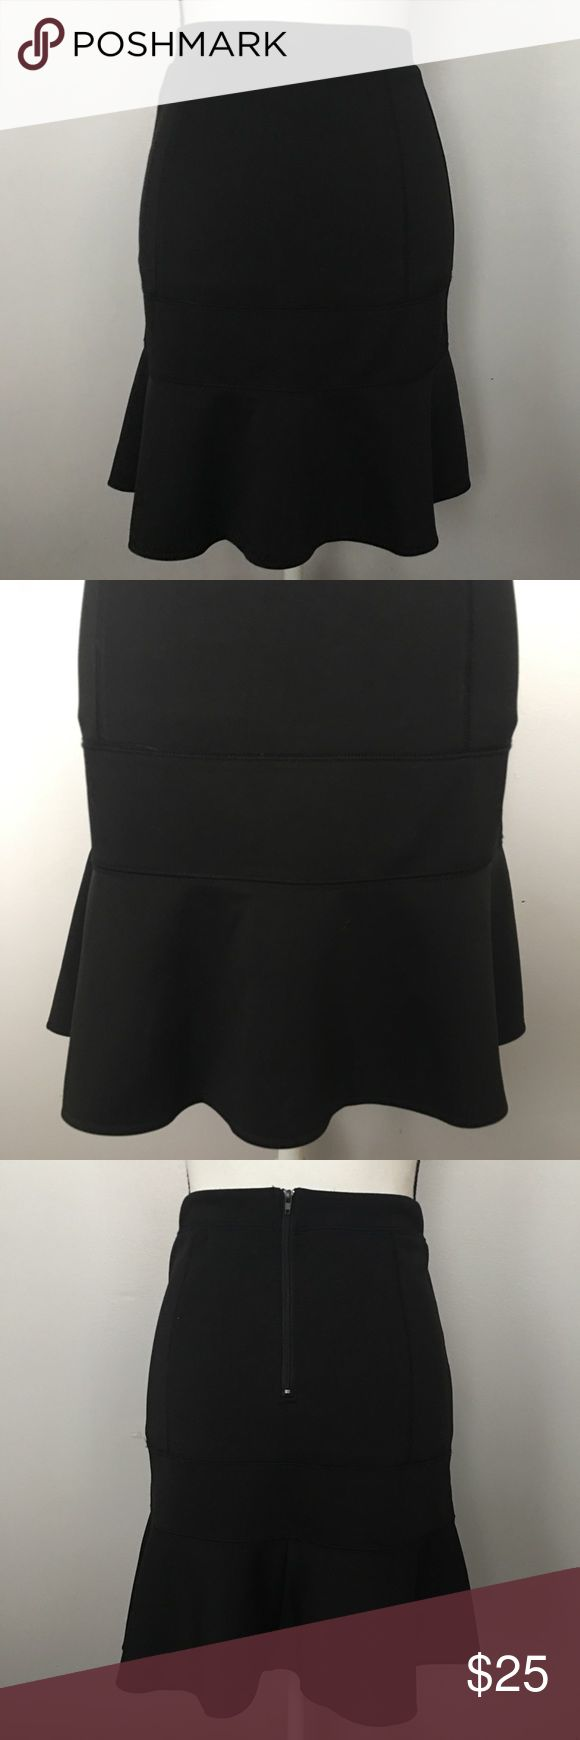 """EUC Whitney Port Black Professional Skirt Whitney Port Black Skirt Size 2 13"""" at Waist (measured flat) 19"""" Long Structured through hips with small flair at bottom Whitney Port Skirts"""